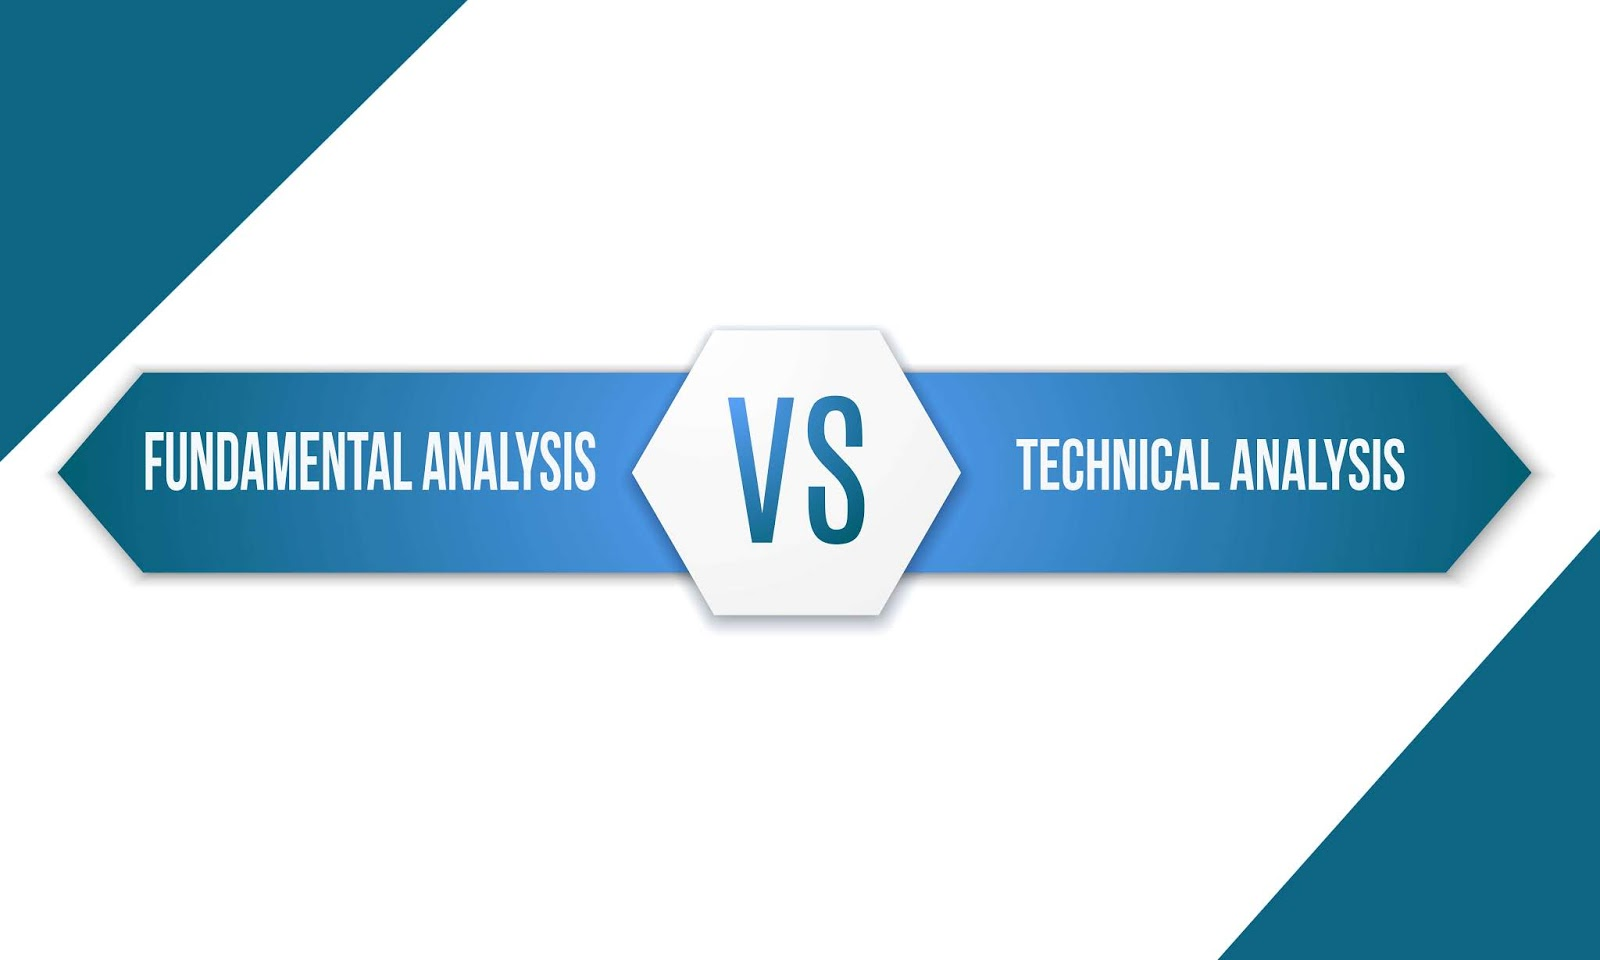 Fundamental analysis and technical analysis written on either side of the VS sign